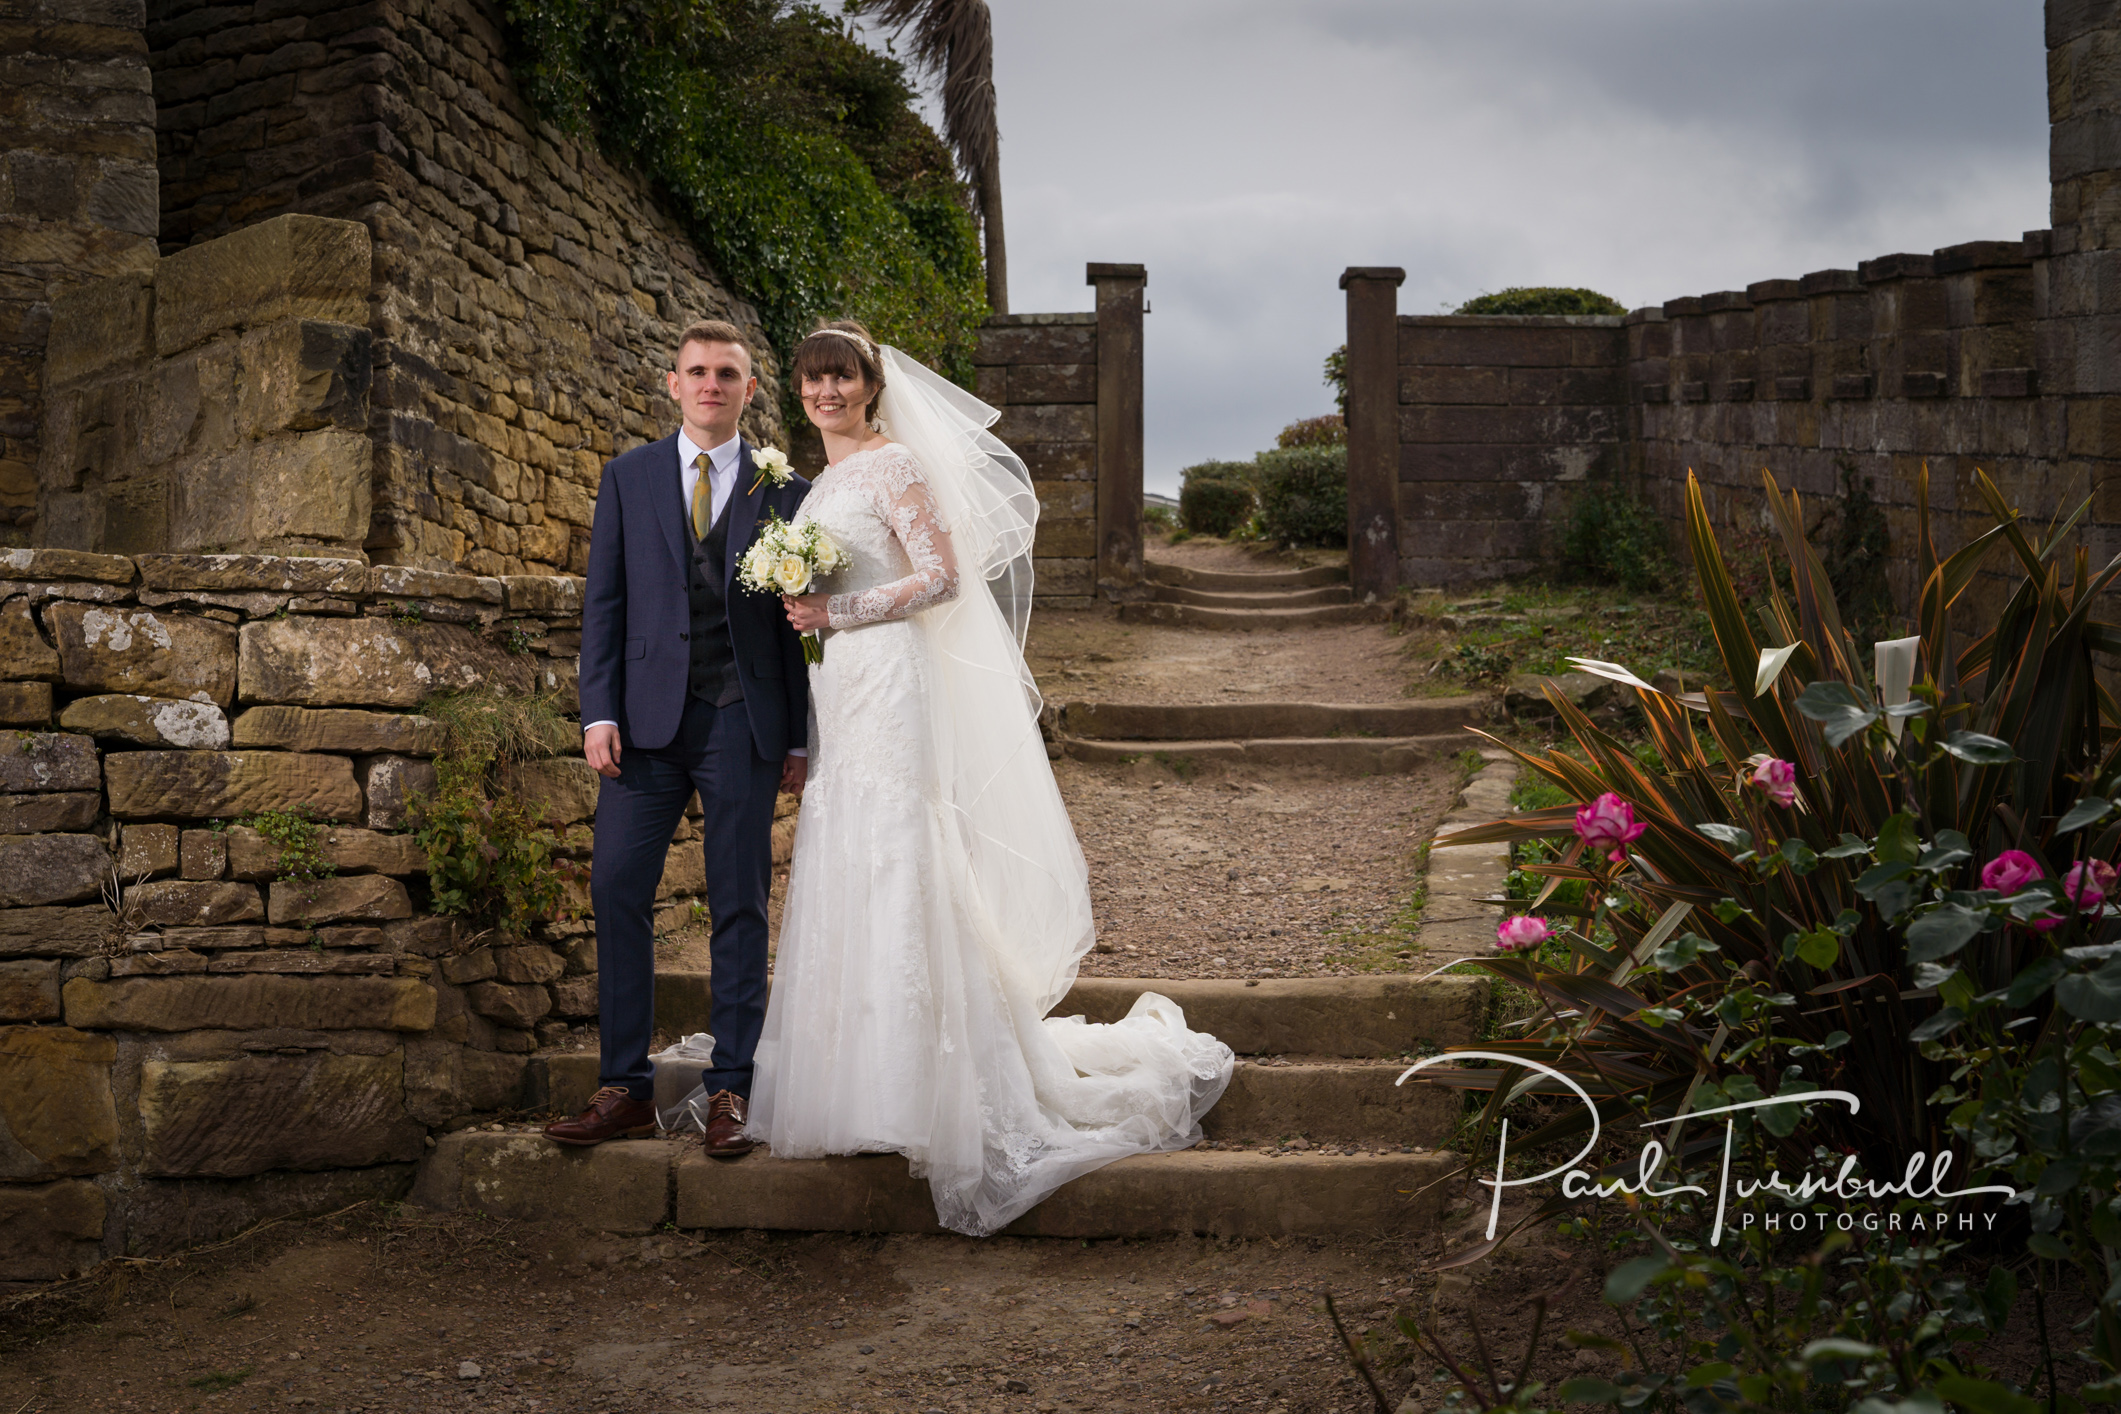 Bride and groom in the gardens of Raven Hall after their wedding